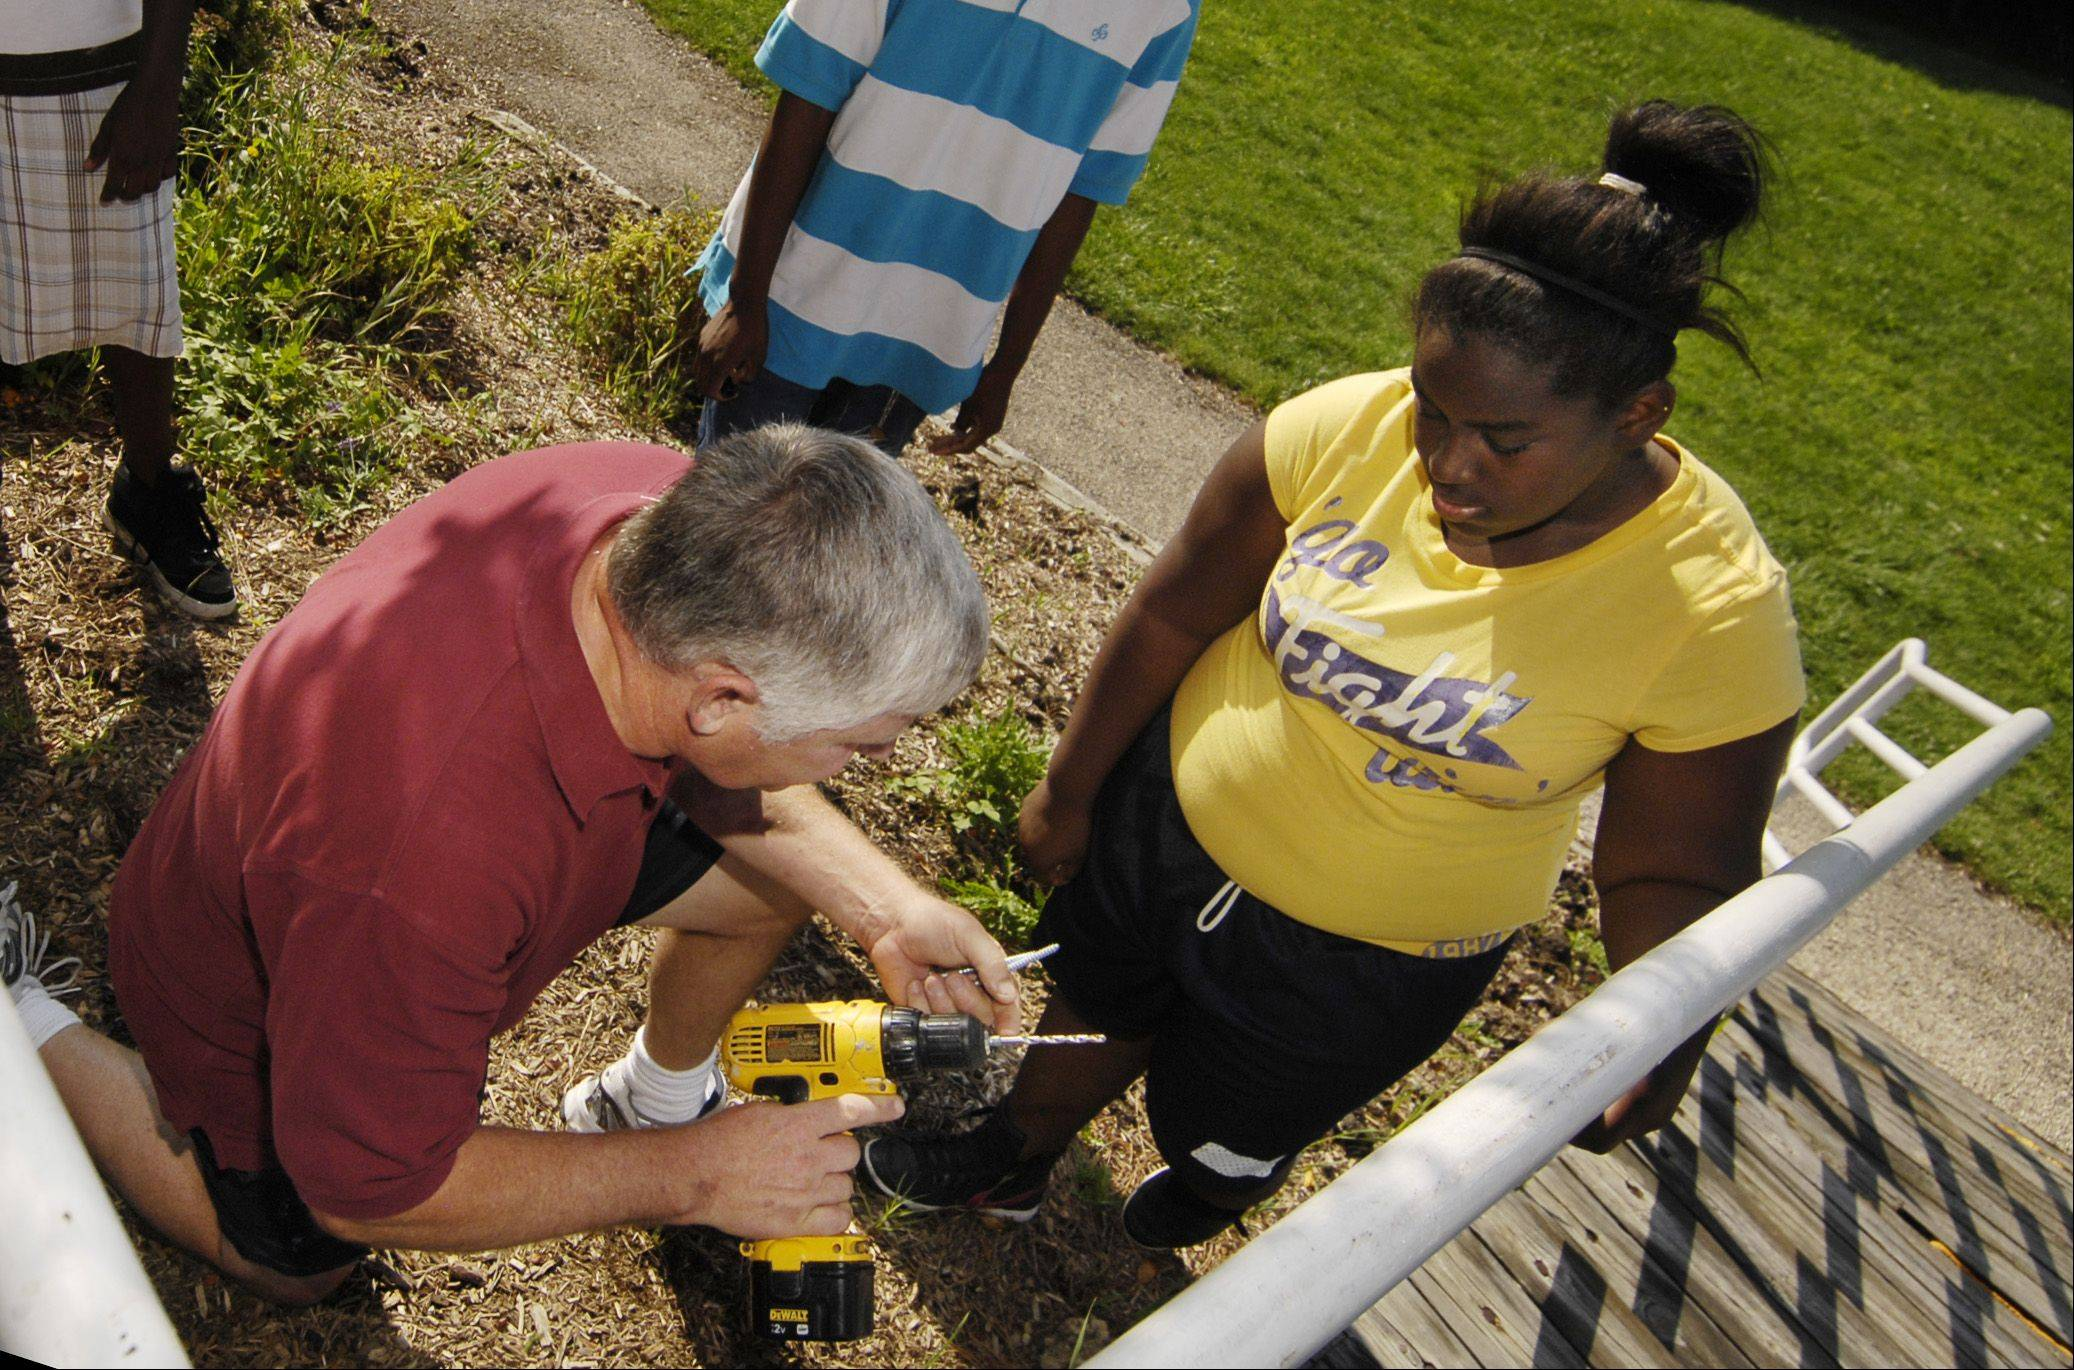 Misavage shows Nia Williams how to use a power drill as he and his team of students repair a railing at Outreach Community Ministries in Carol Stream.